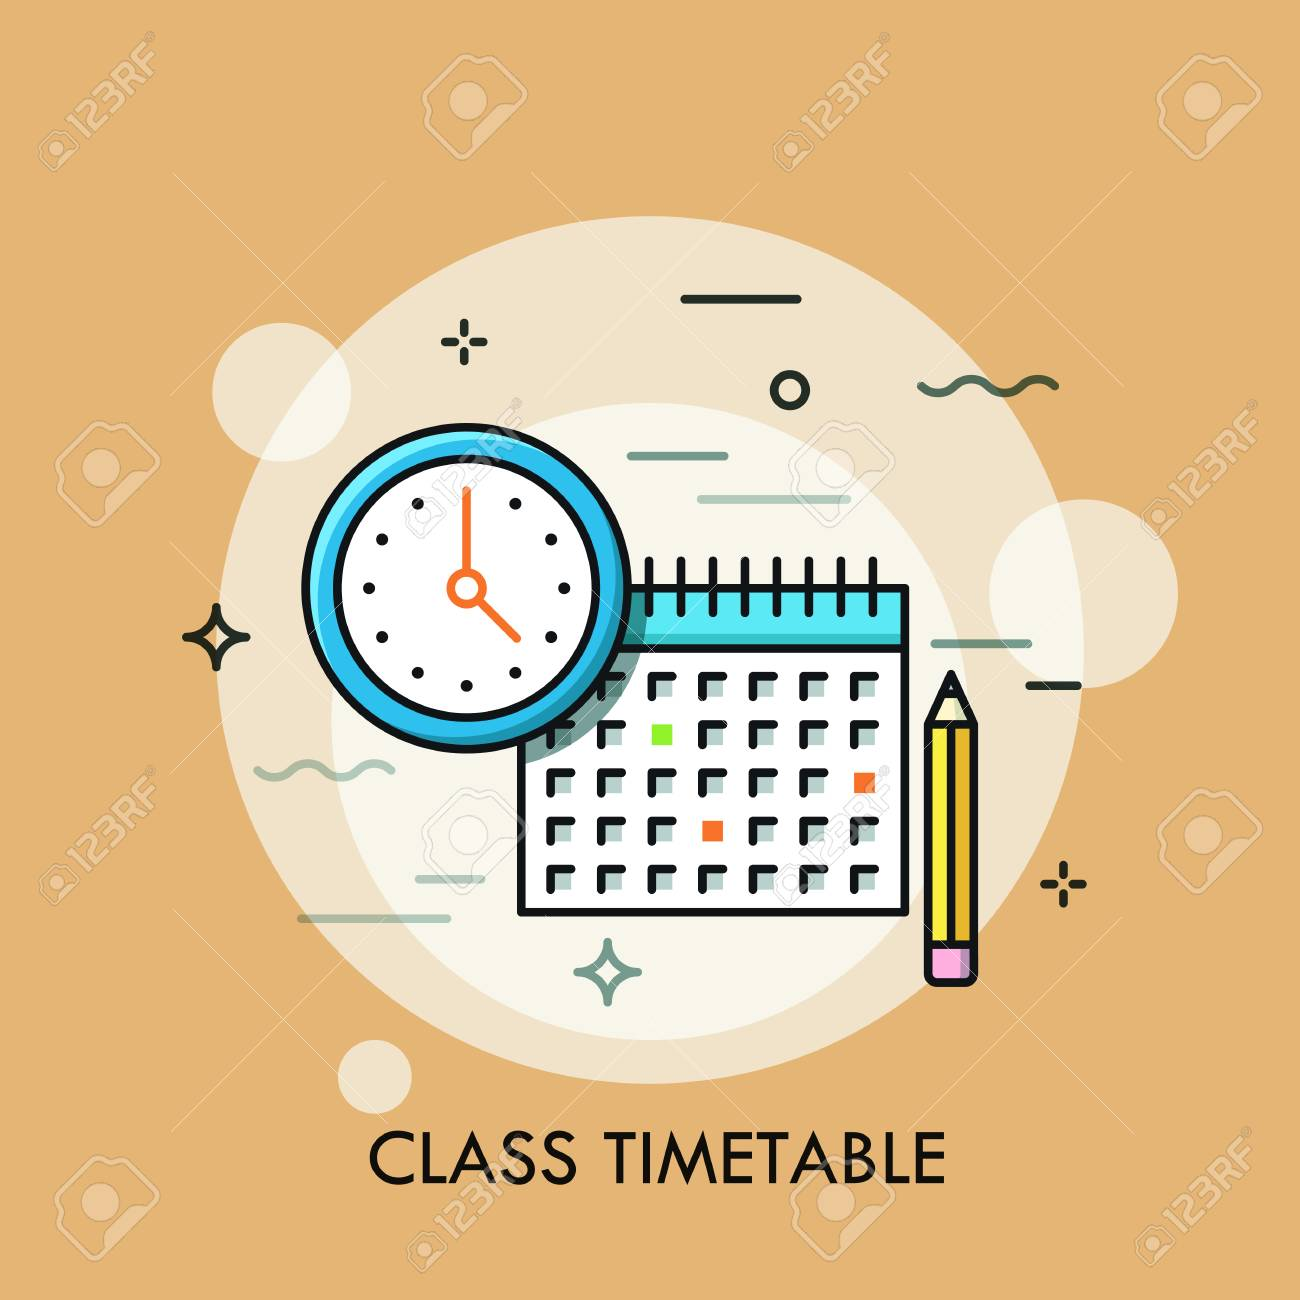 Clock Calendar And Pencil Concept Of Class Timetable Or Schedule